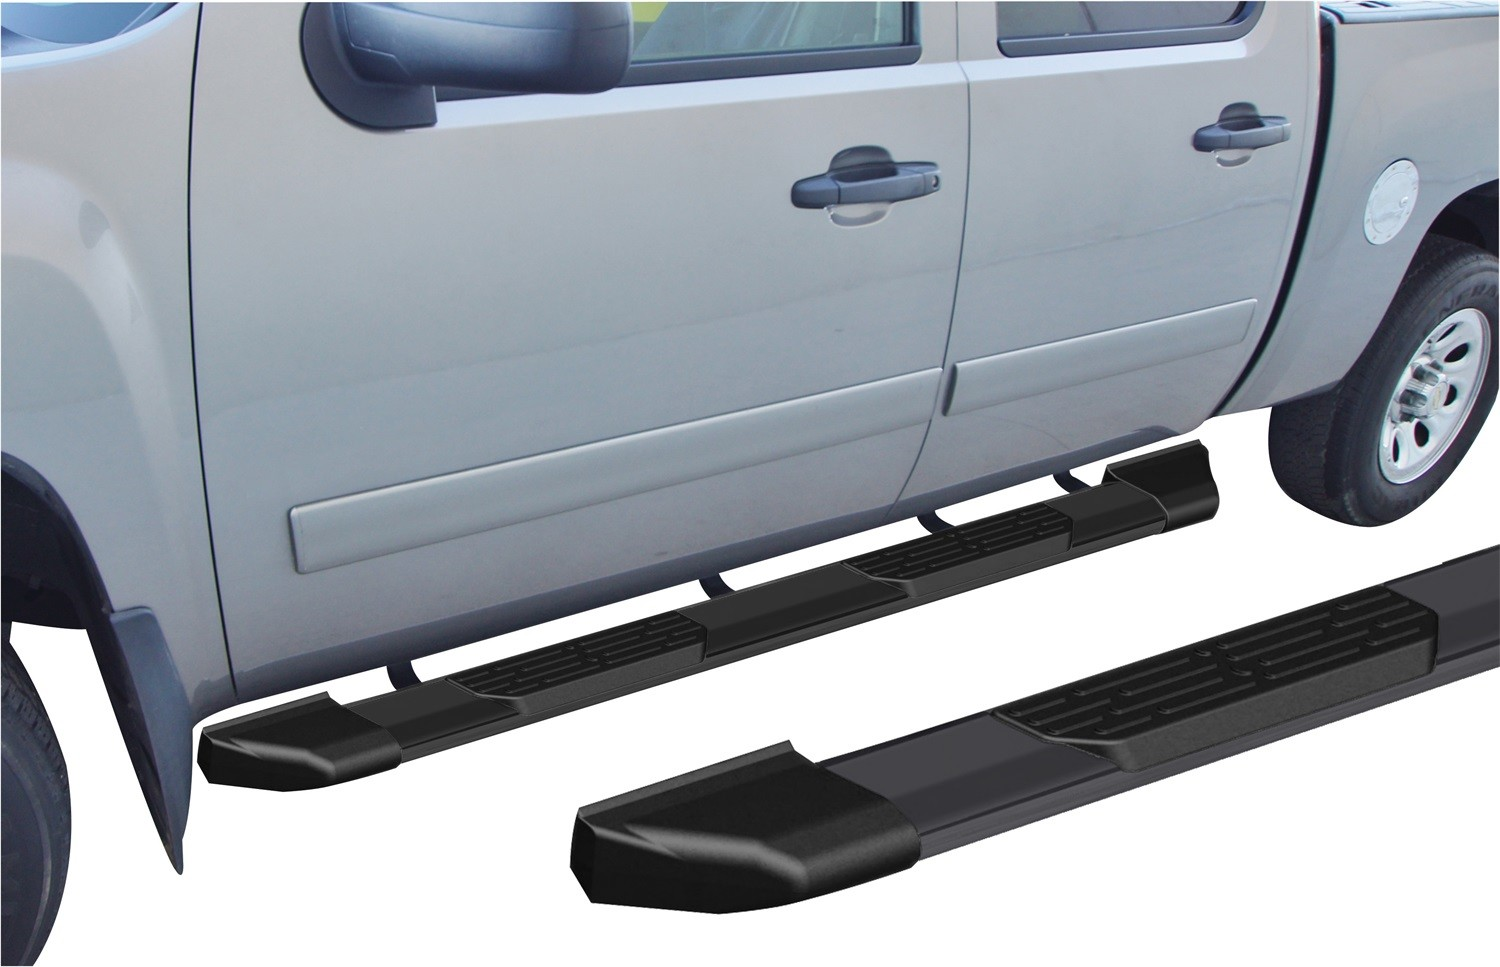 RAMPAGE PRODUCTS - Xtremeline 6 in. Oval Cab Length Running Board - RMP 16170